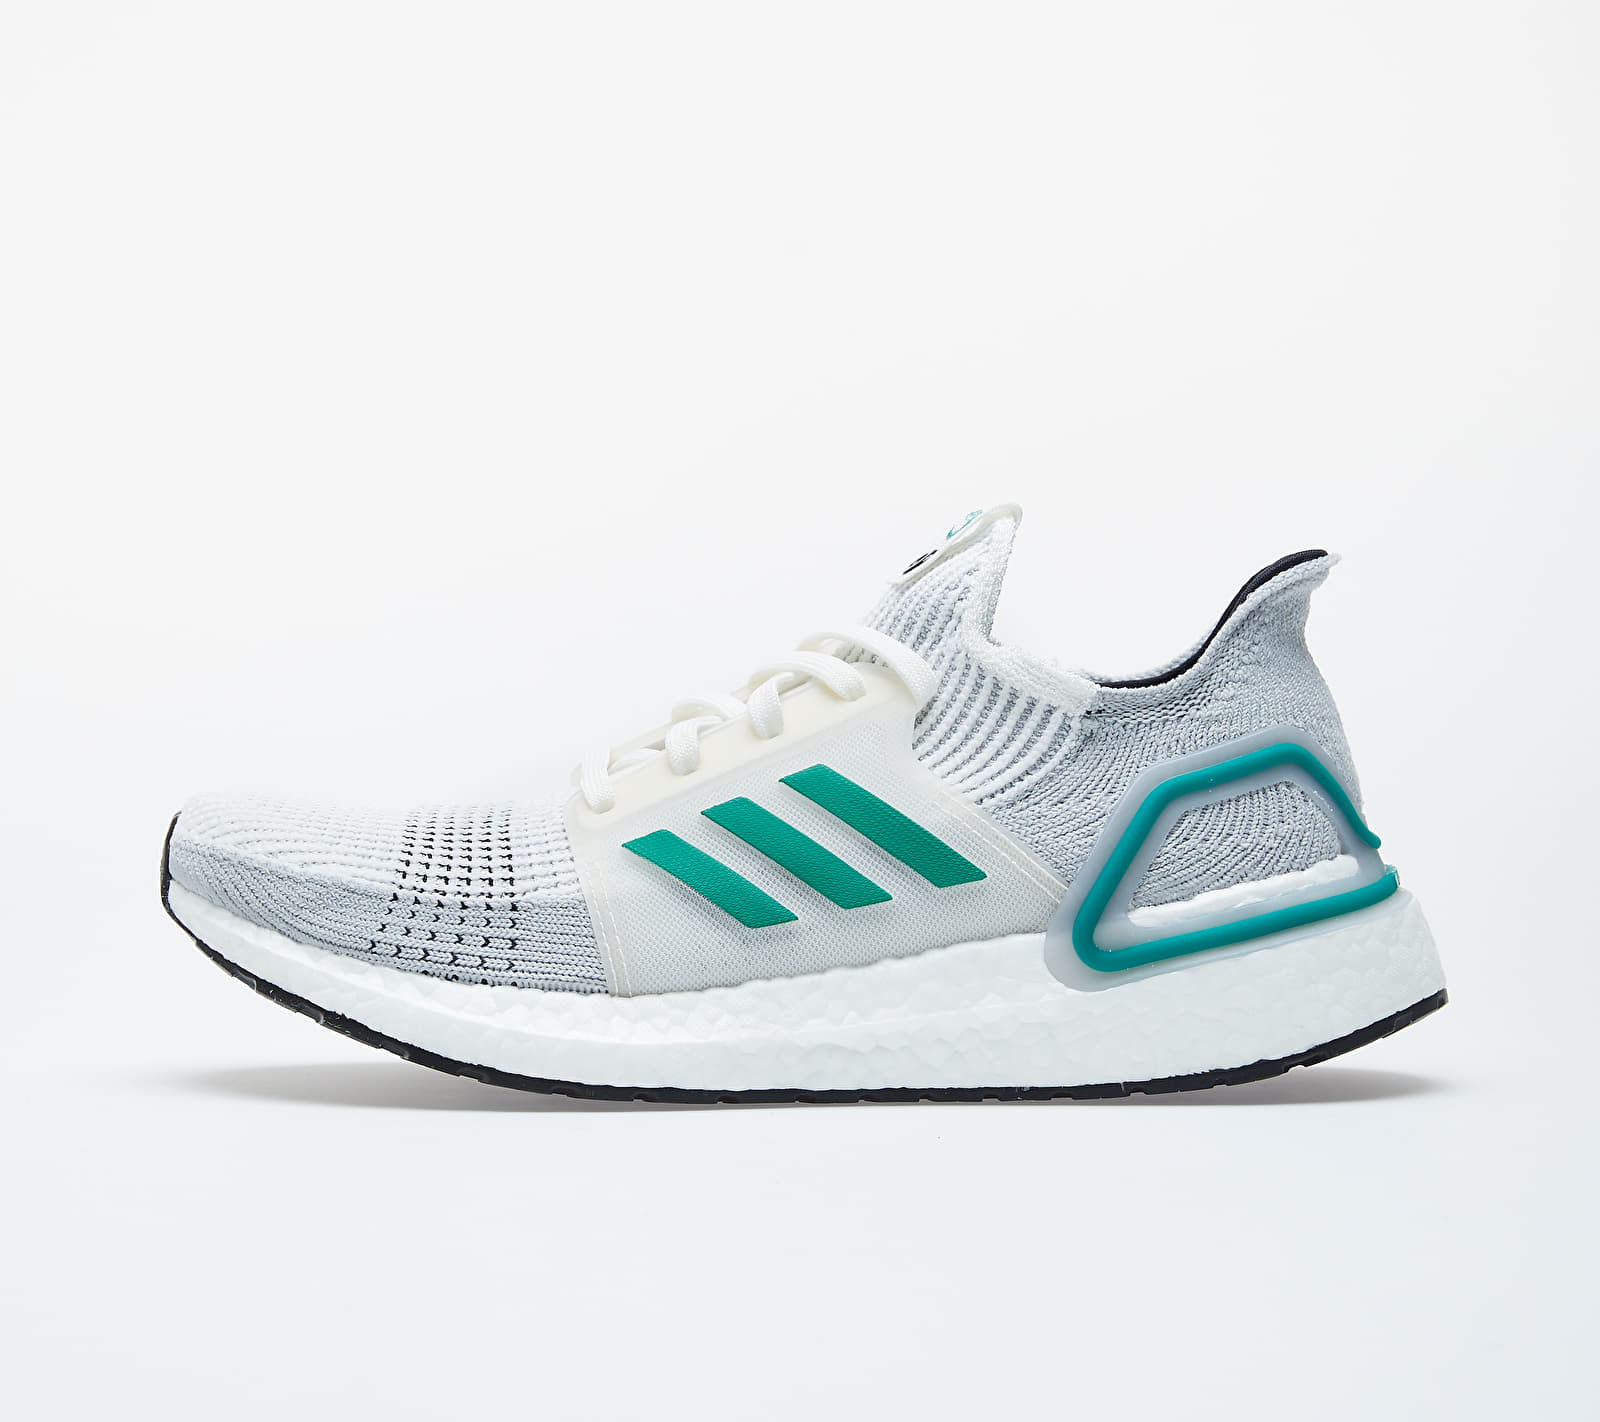 adidas Consortium UltraBOOST 19 Core White/ Sub Green/ Grey Two EE7517